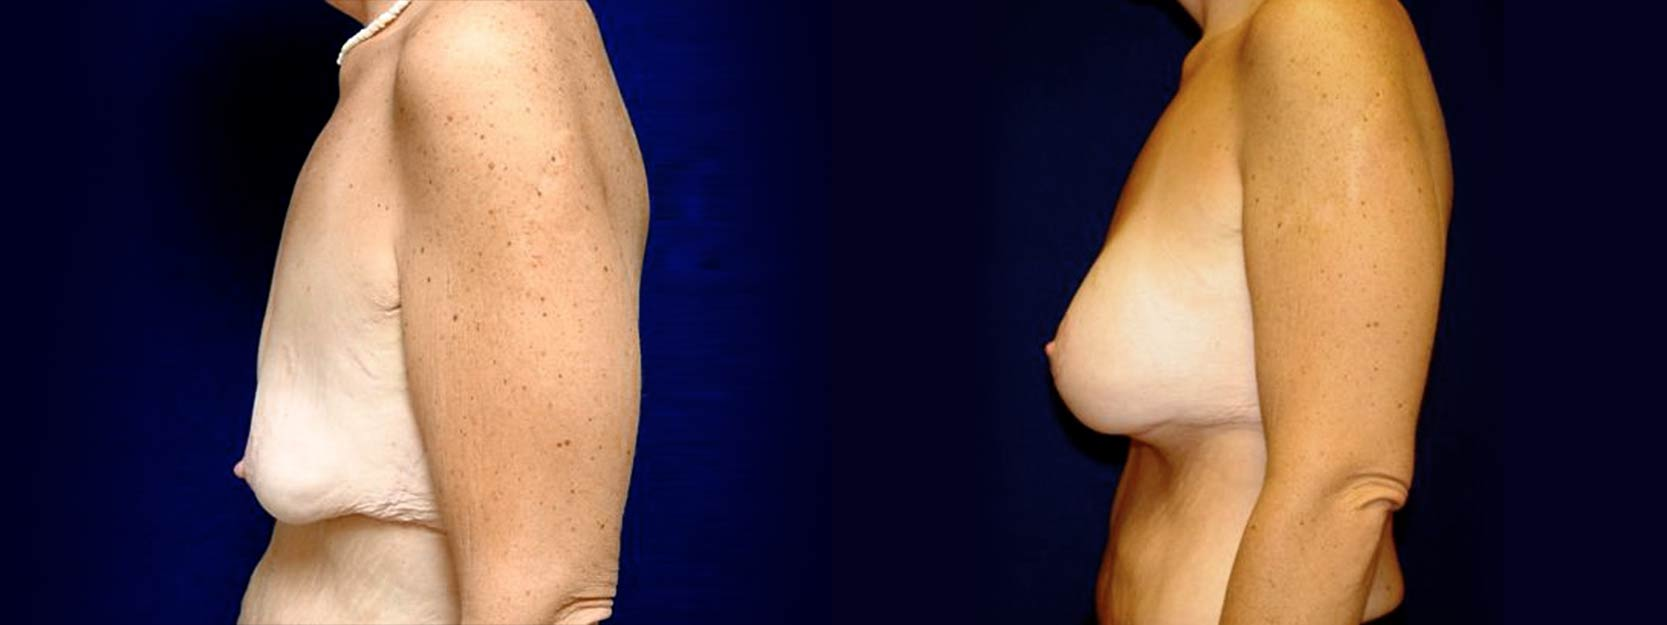 Left Profile View - Breast Augmentation with Lift After Massive Weight Loss